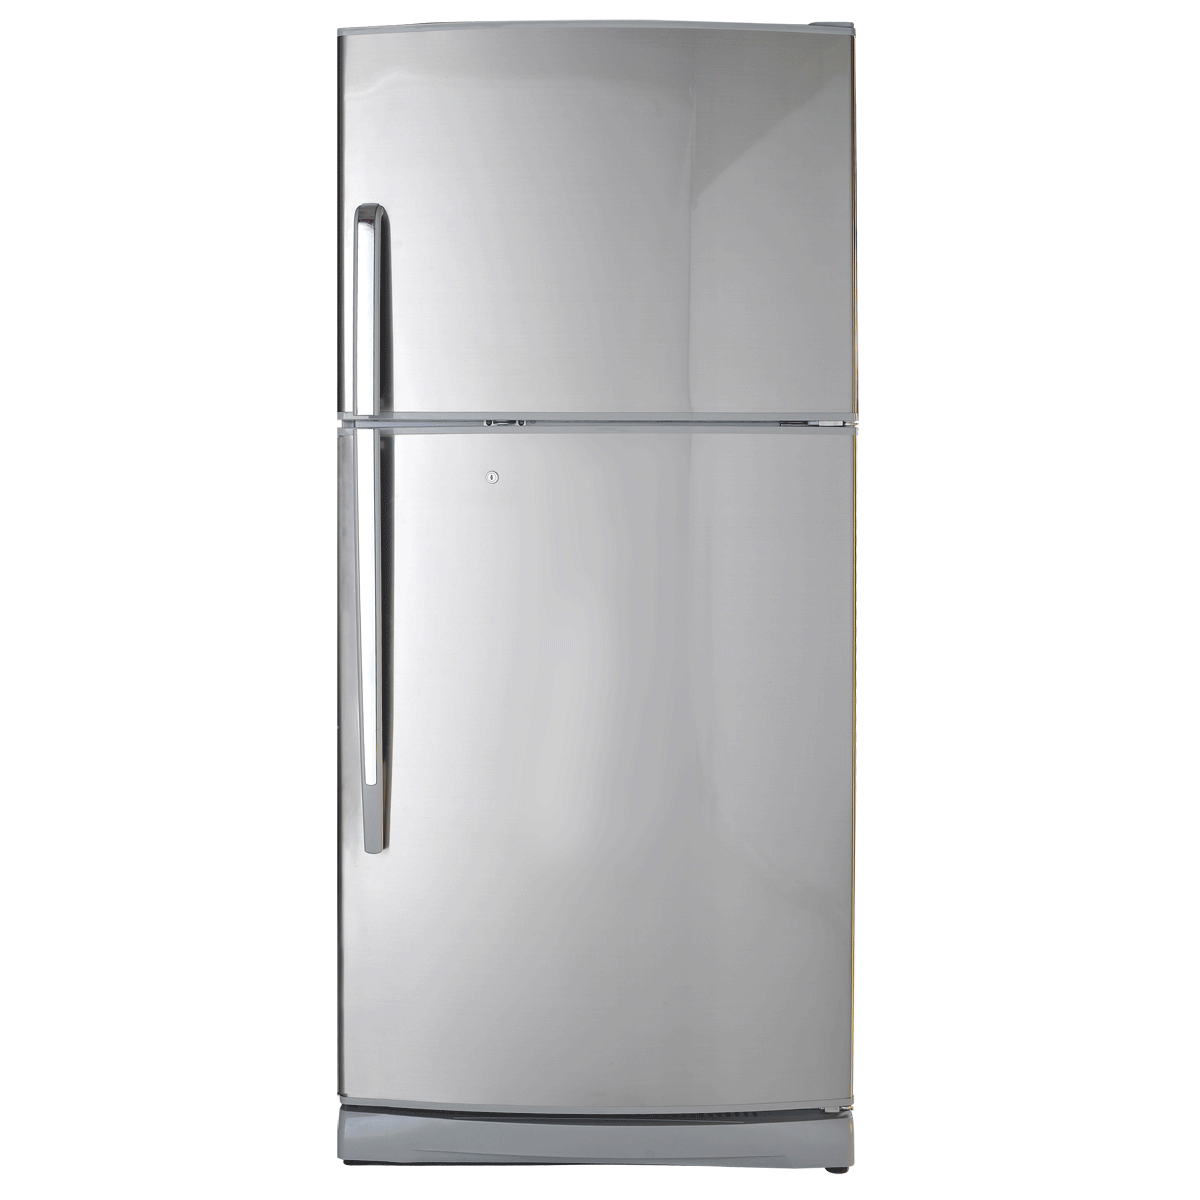 vector black and white download Refrigerator clipart free. Png image purepng transparent